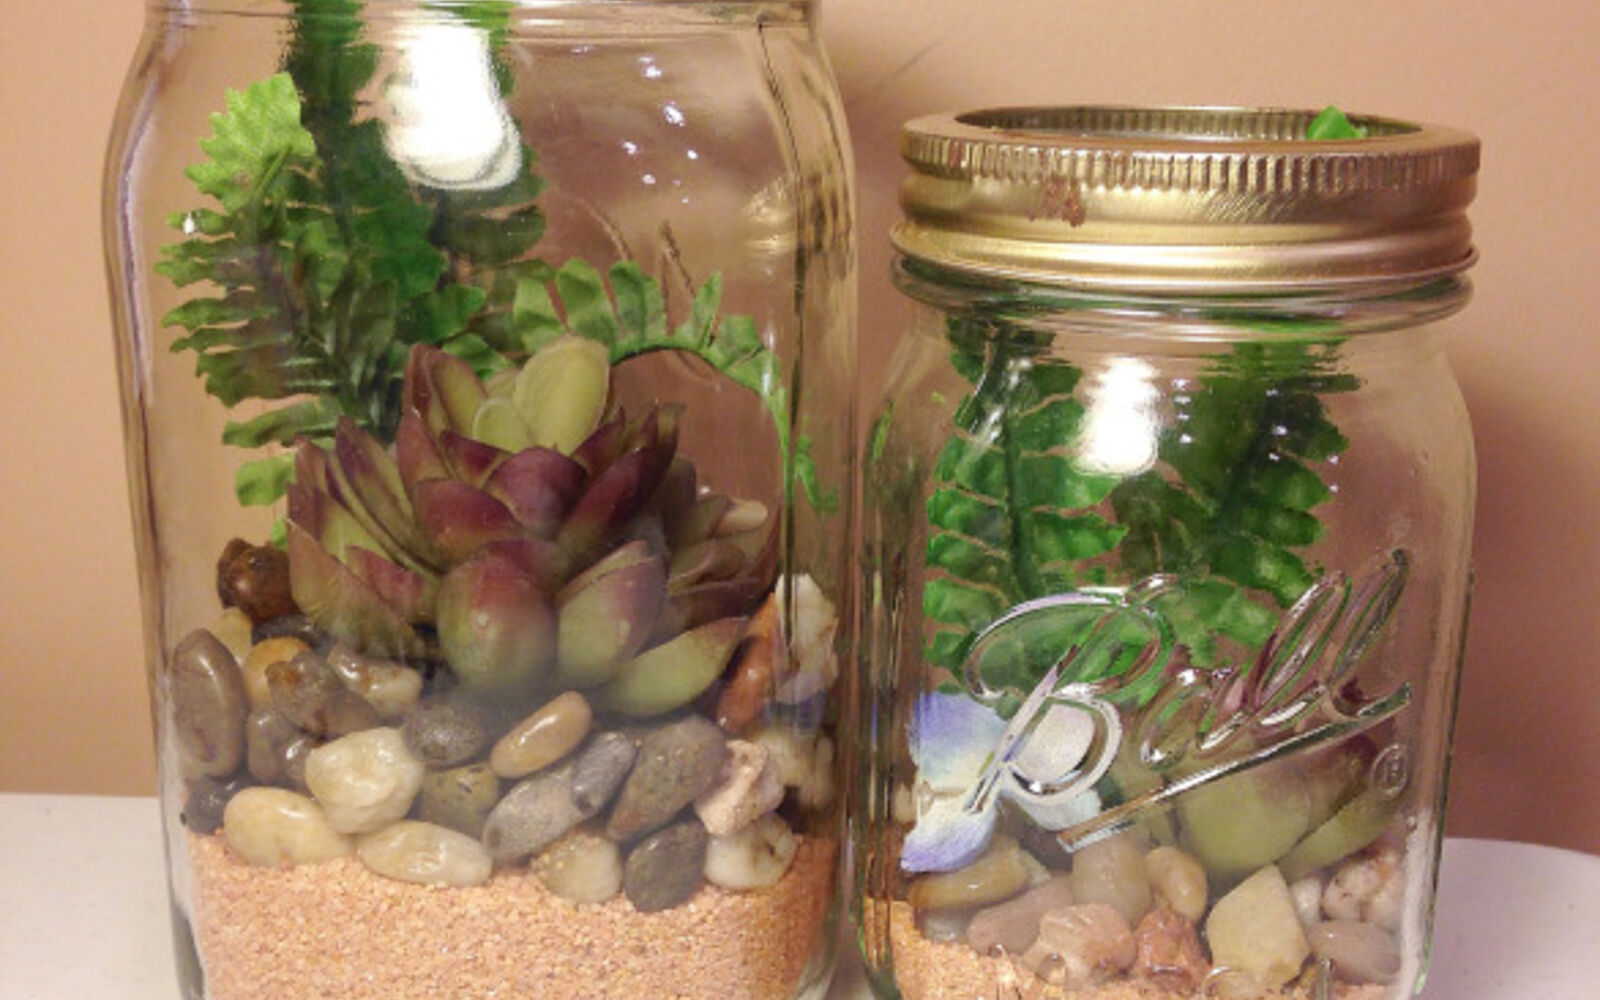 s 30 great mason jar ideas you have to try, Adorable Winter Terrarium